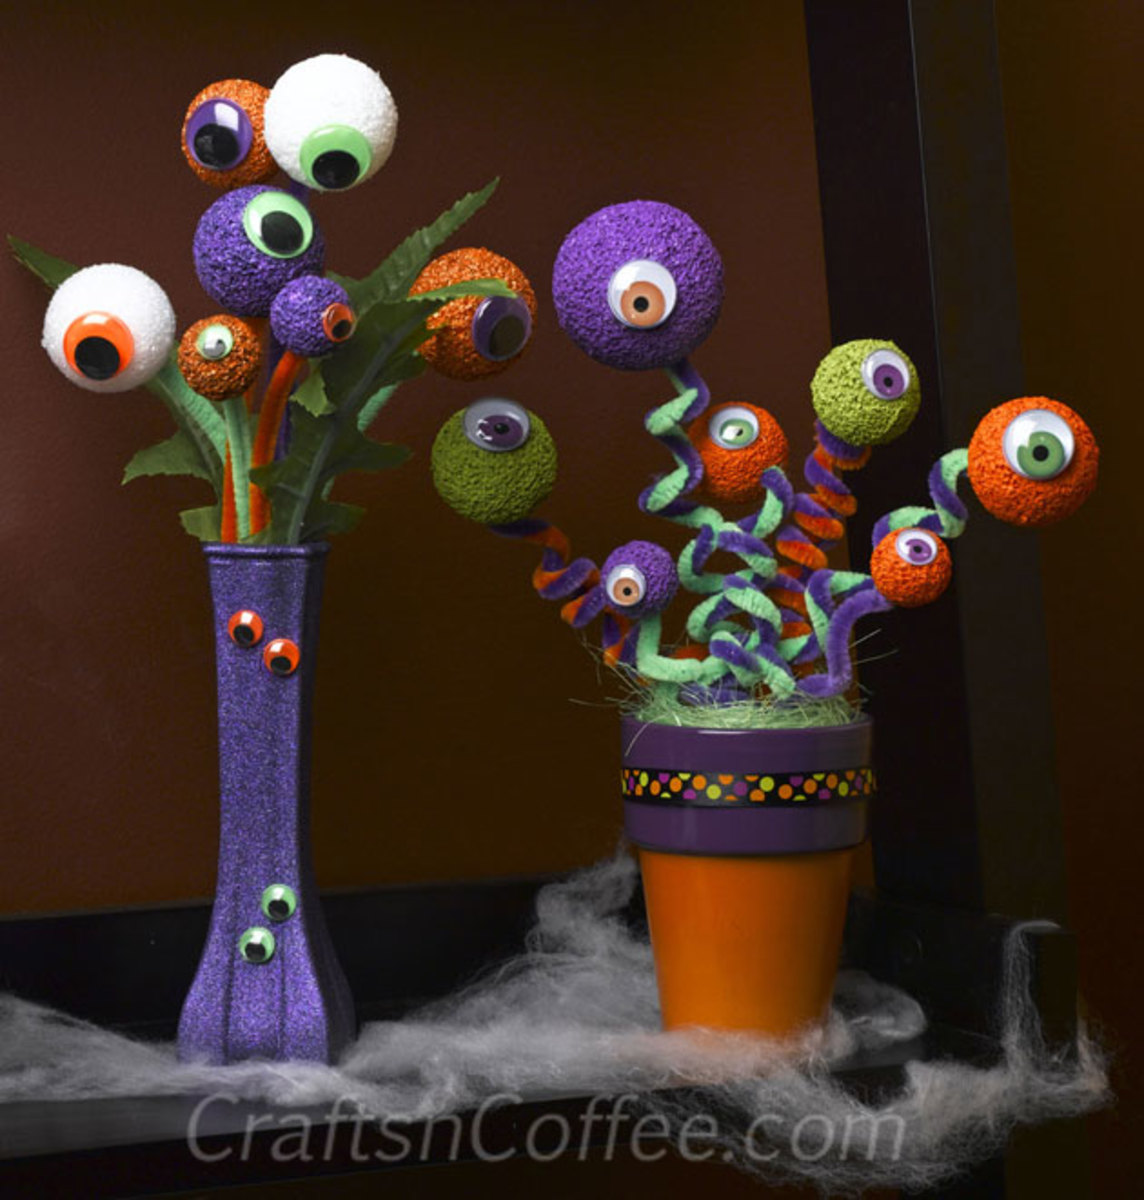 Eyeball crafts are fun to make and a great way to decorate your home for Halloween